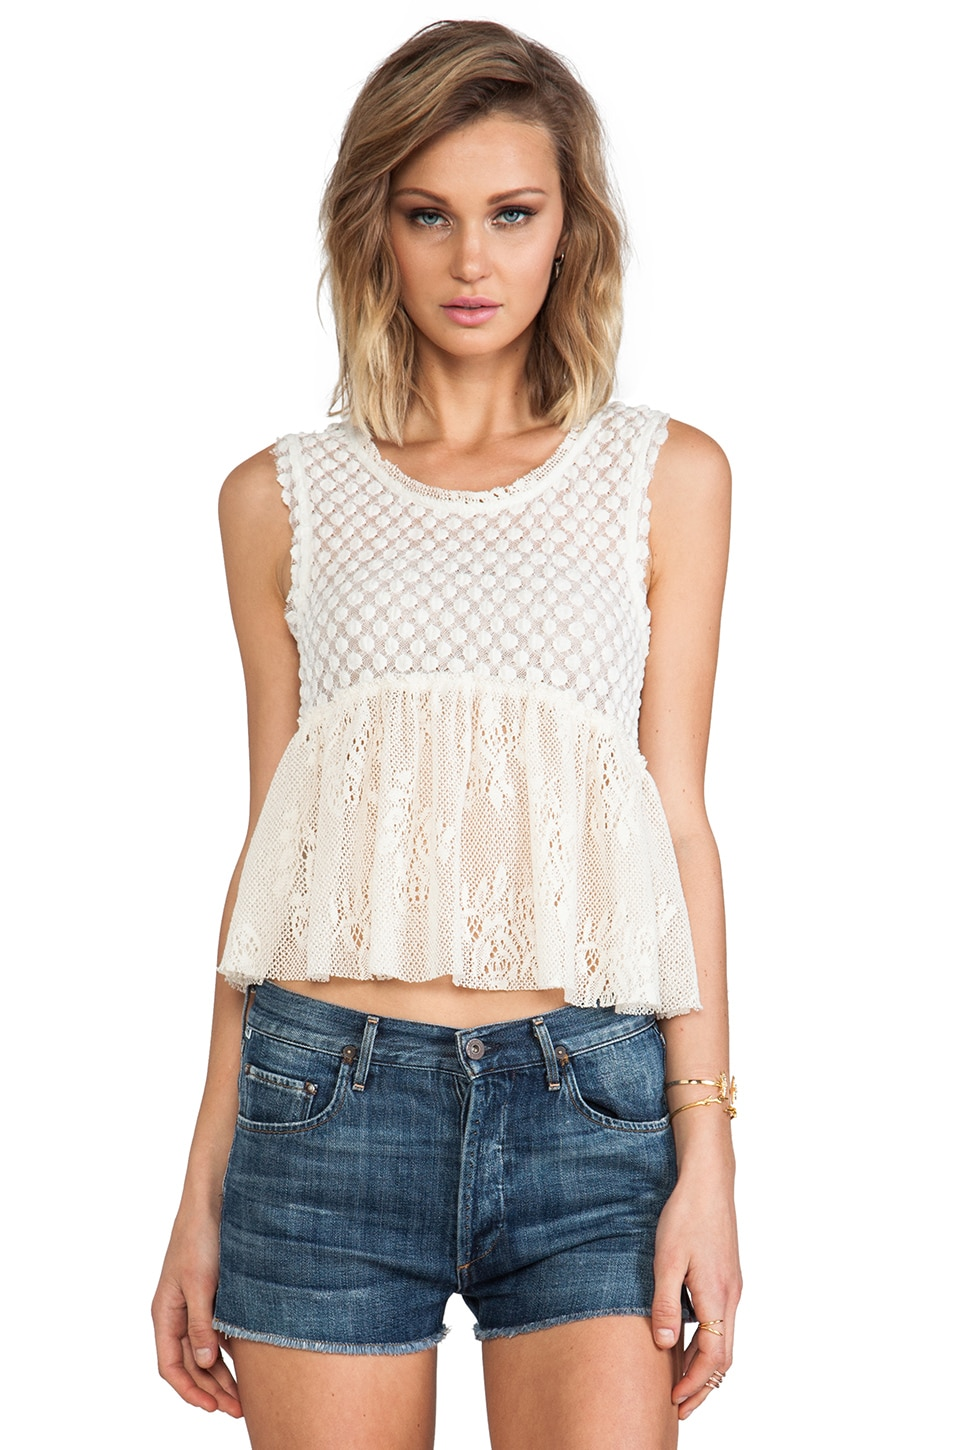 Free People Varsity Peplum Top in Ivory